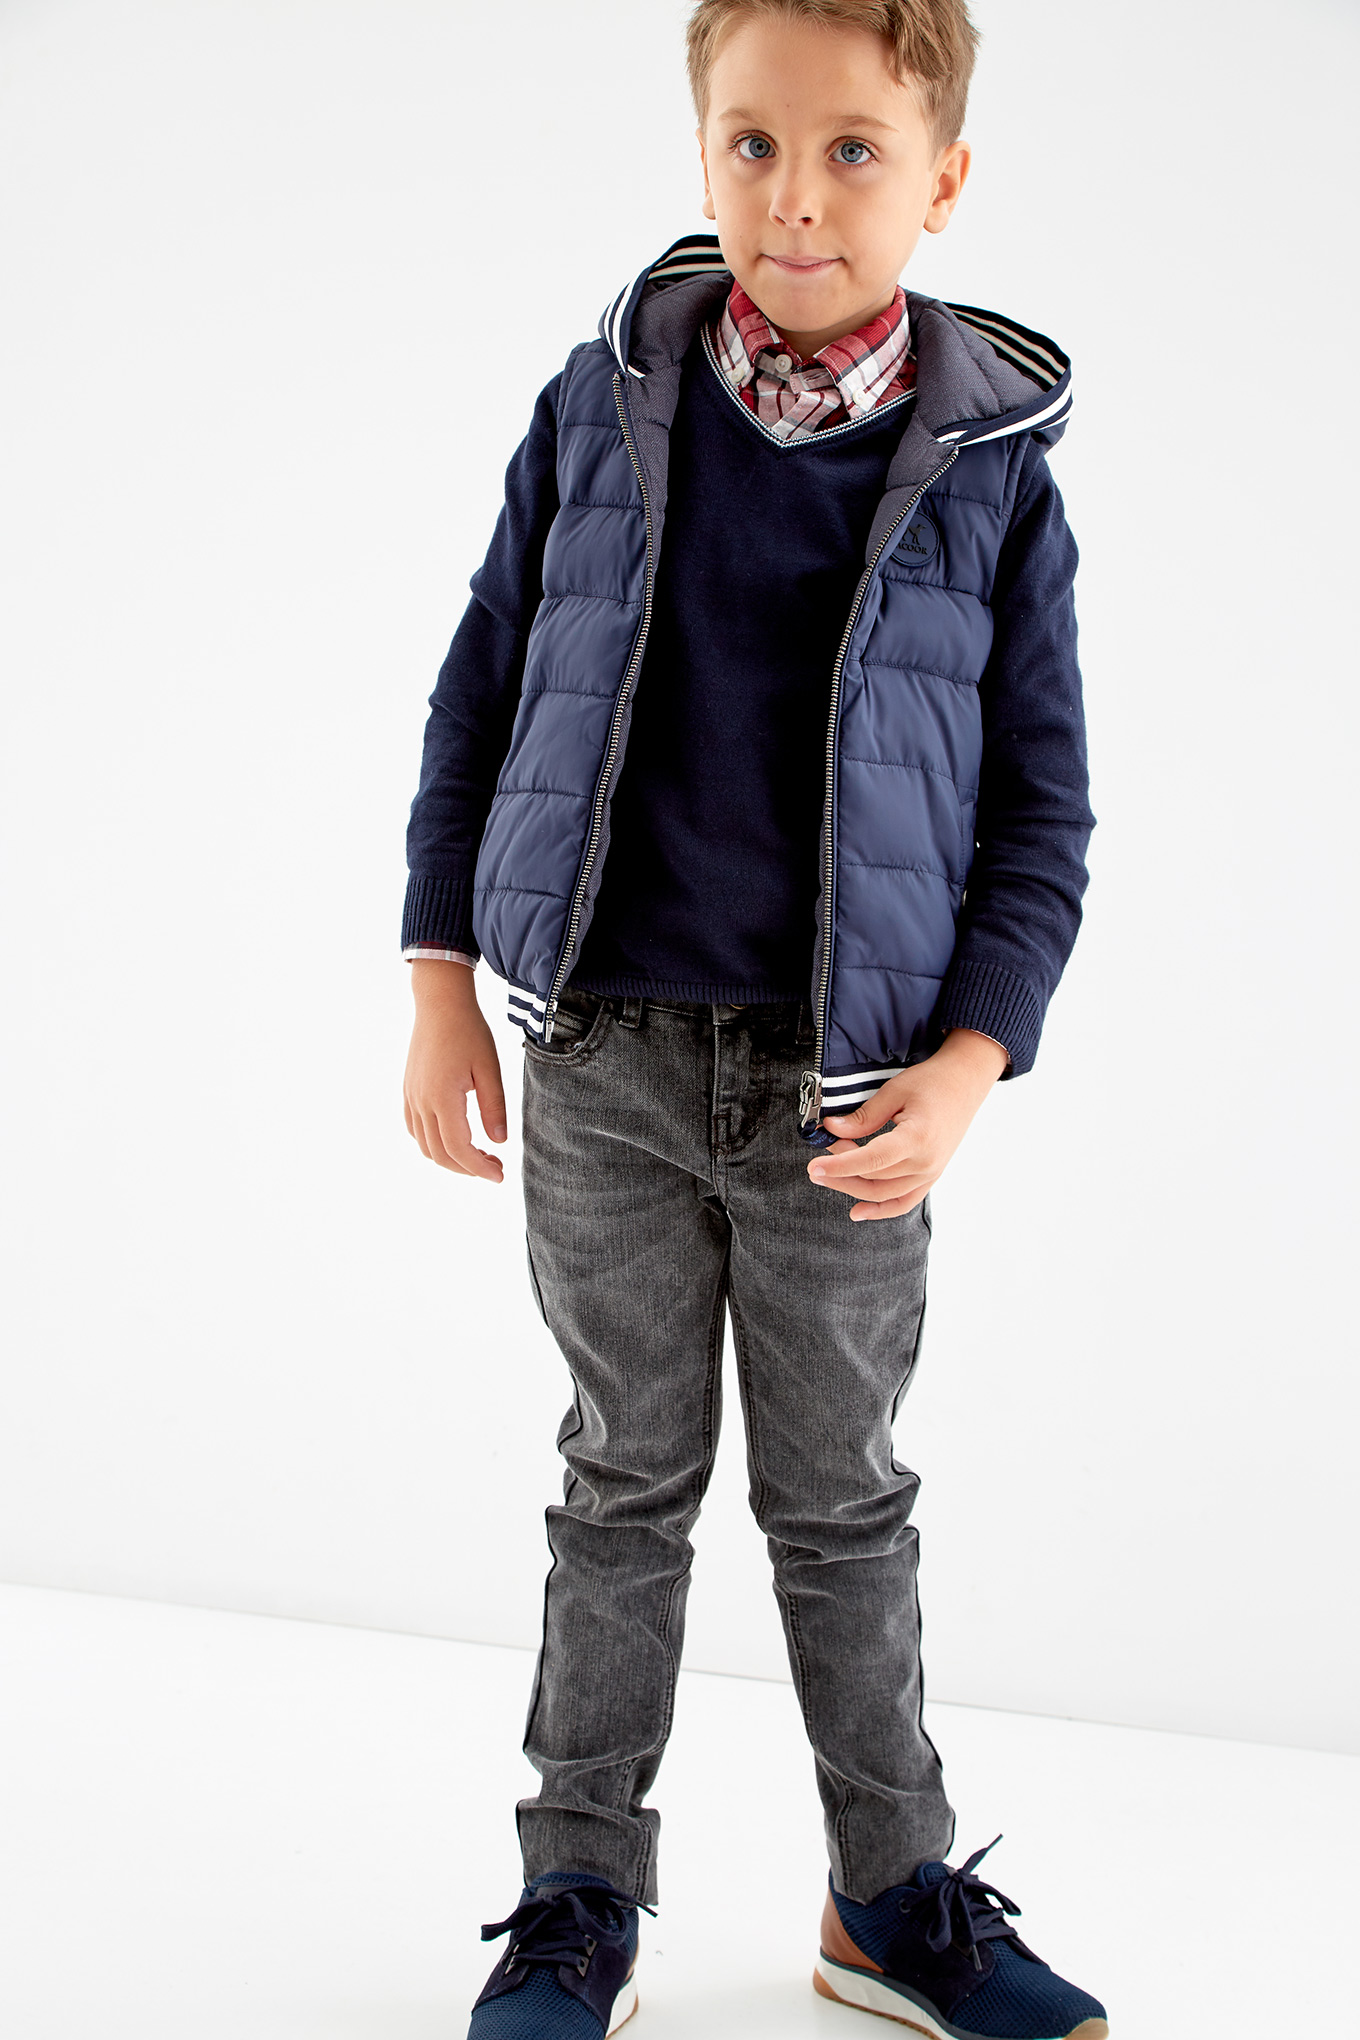 Waist Coat Dark Blue Sport Boy